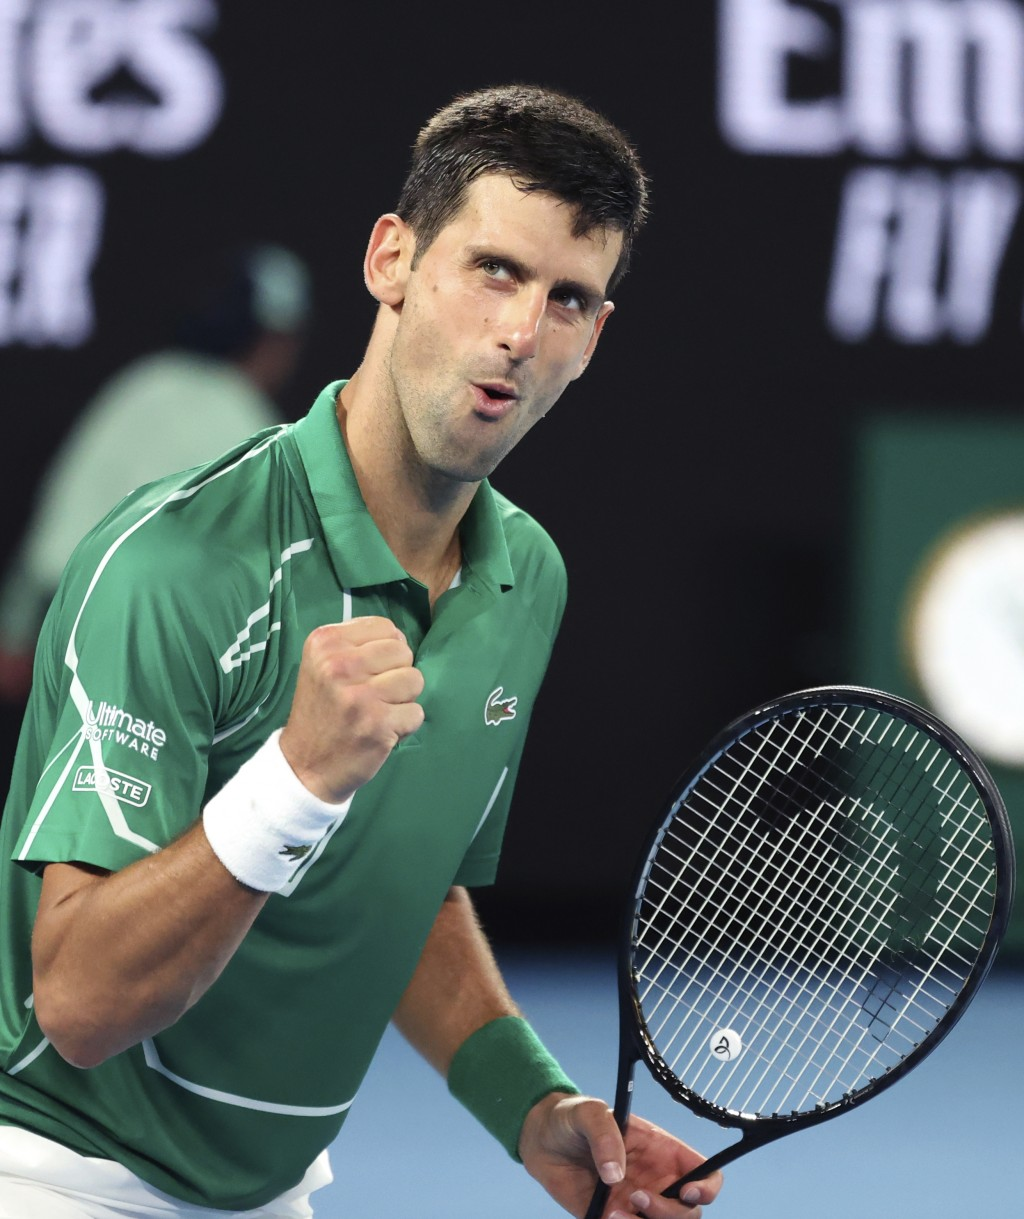 Serbia's Novak Djokovic reacts after winning a point against Germany's Jan-Lennard Struff at the Australian Open tennis championship in Melbourne, Aus...